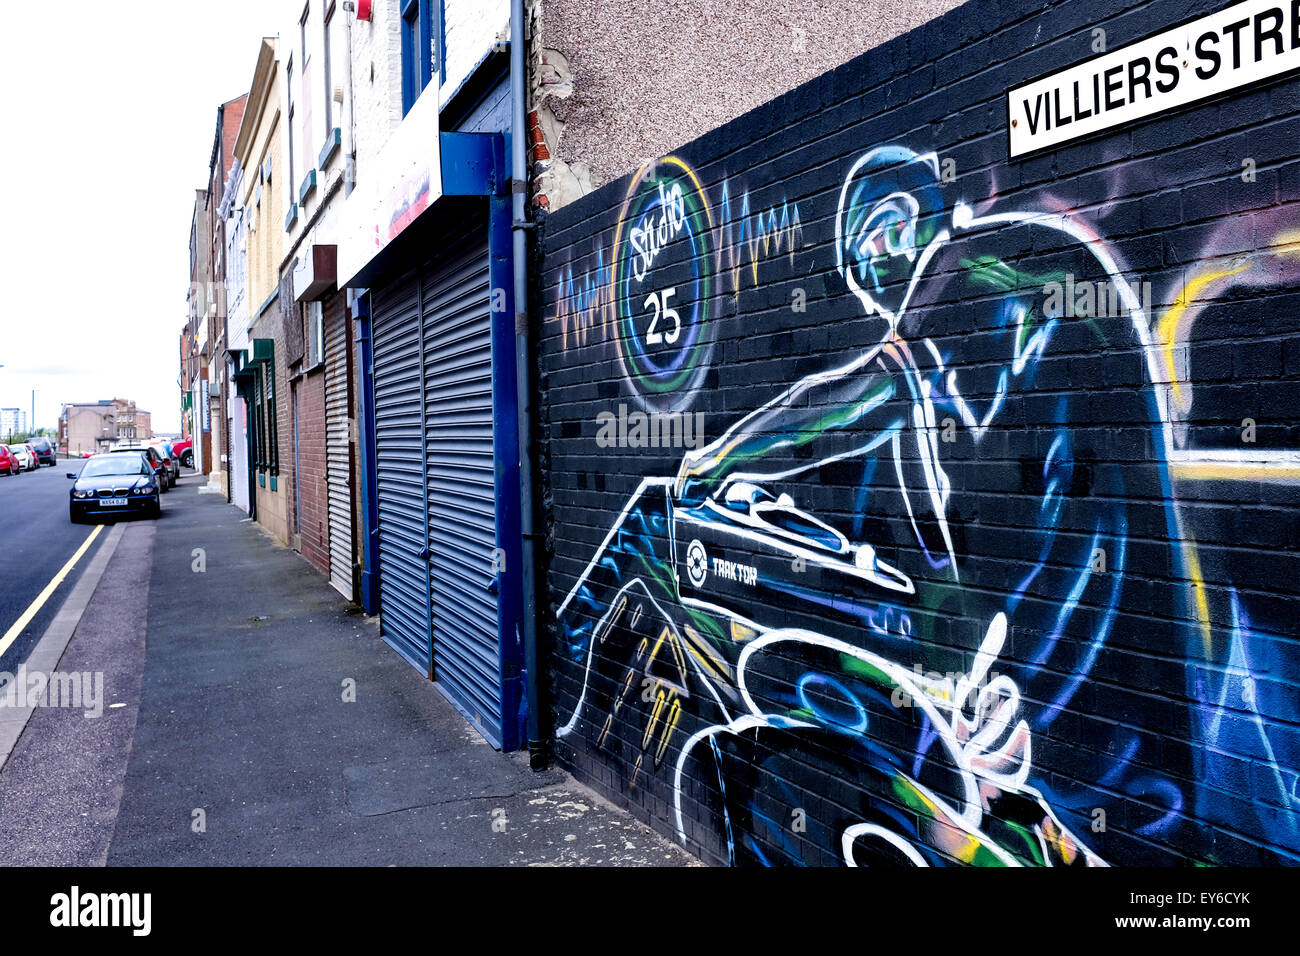 Graffiti art on a wall in Sunderland, UK depicts a DJ playing records. - Stock Image